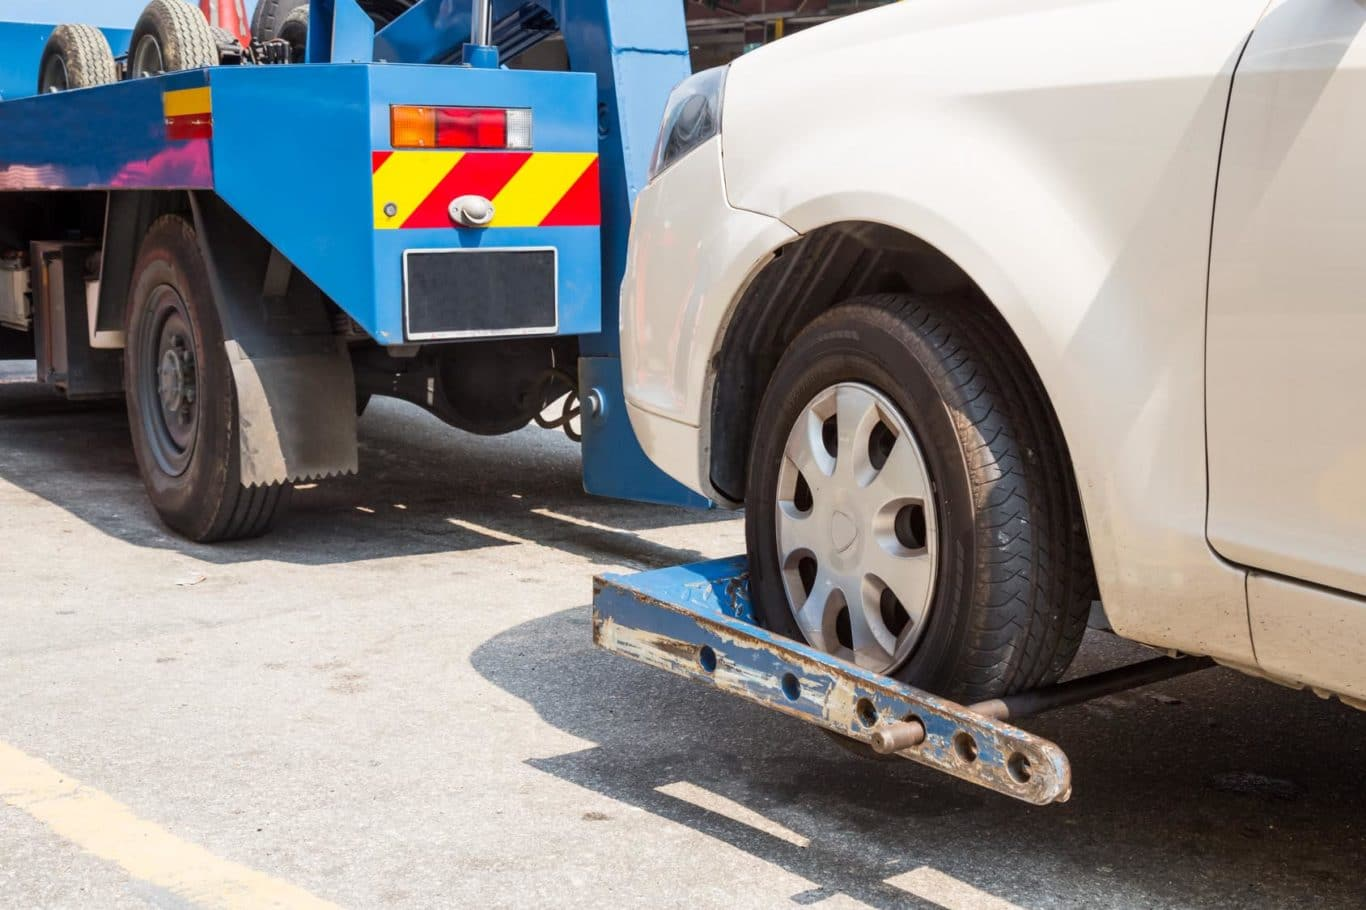 Greenan, County Wicklow expert Car Towing services